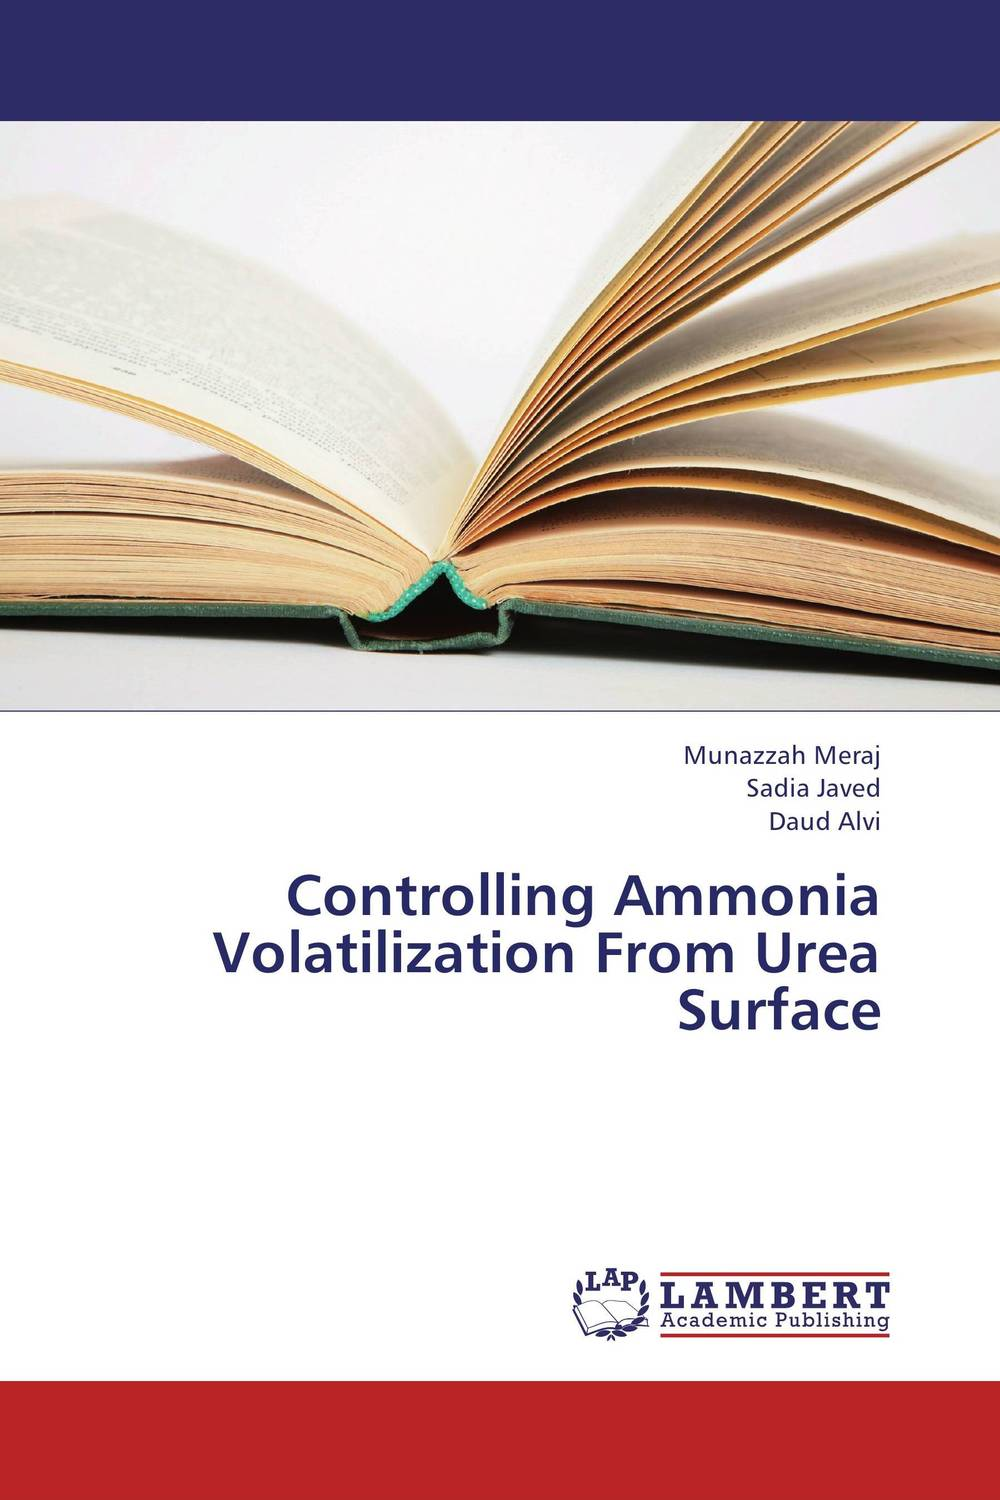 цена на Controlling Ammonia Volatilization From Urea Surface